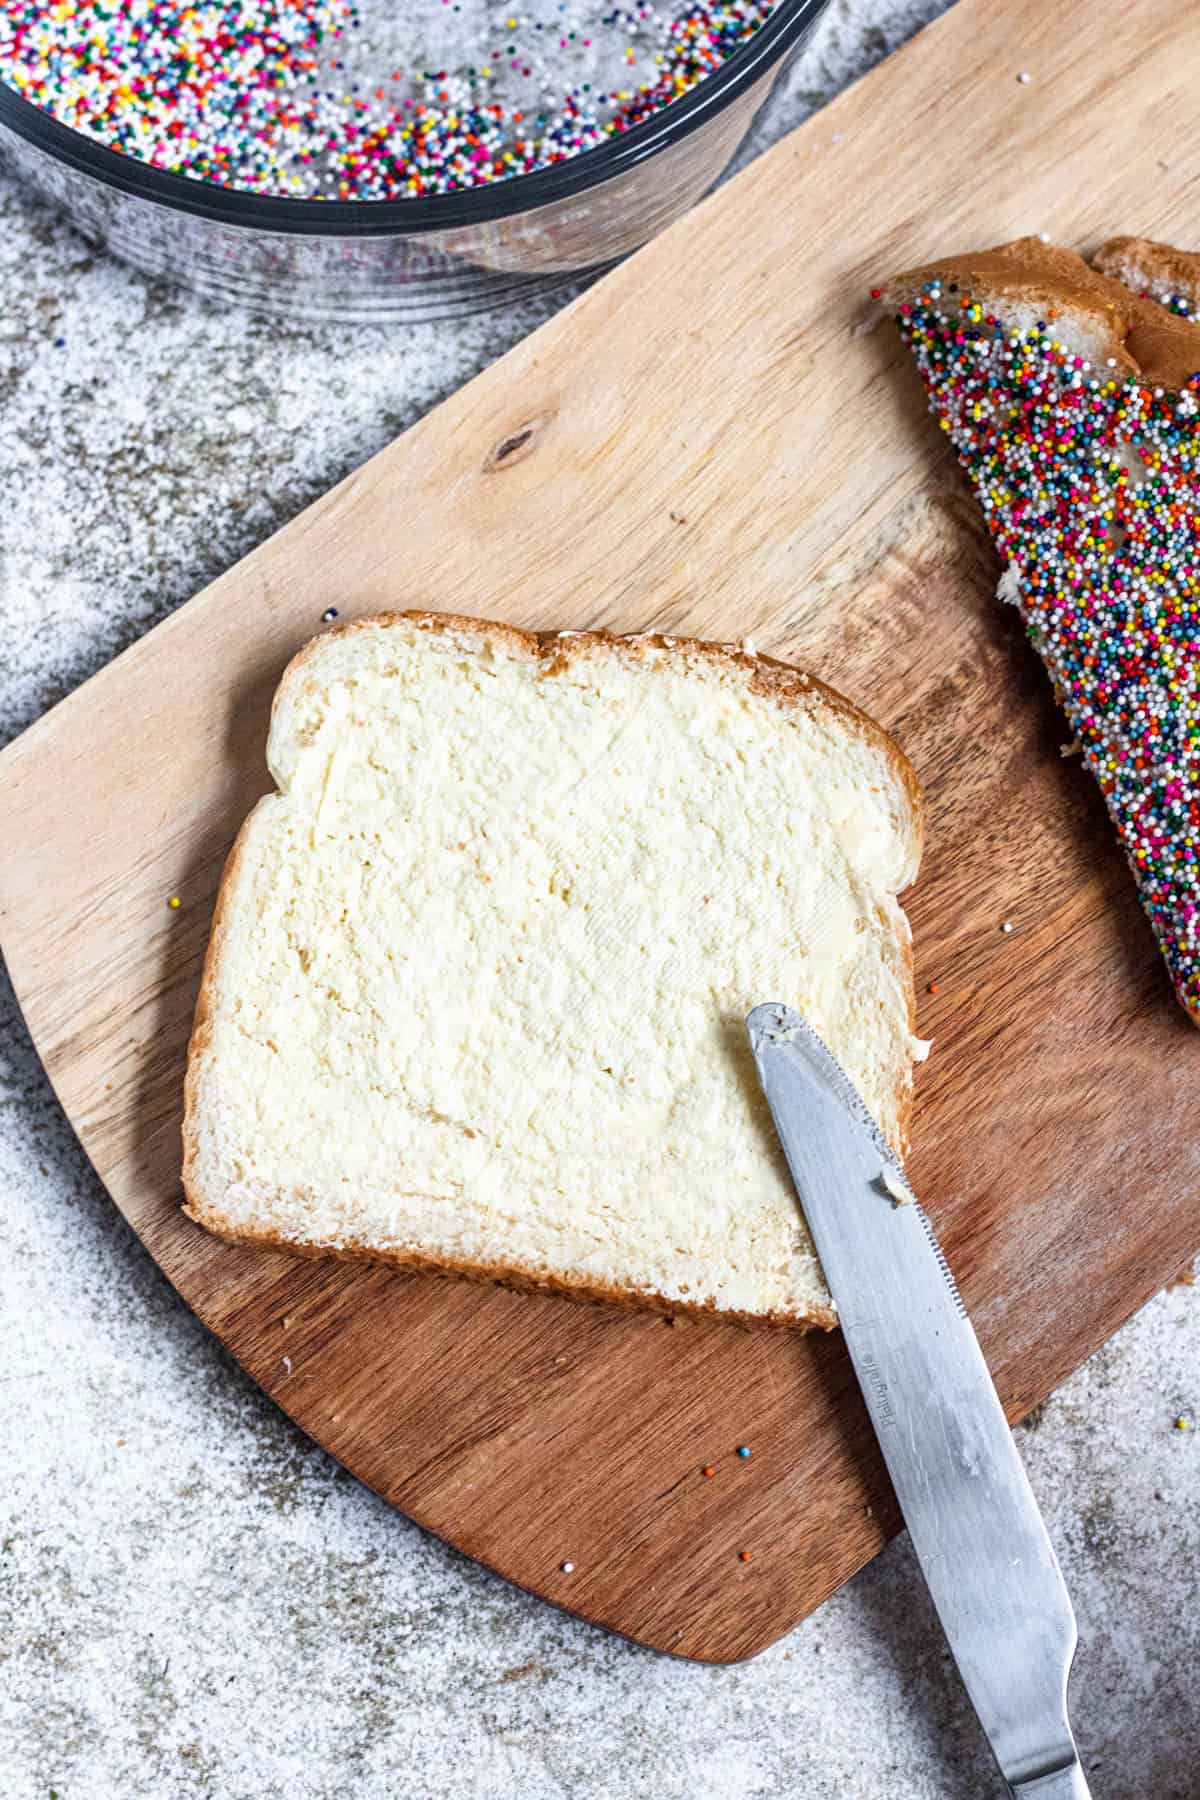 Butter knife spreading margarine on a piece of white bread